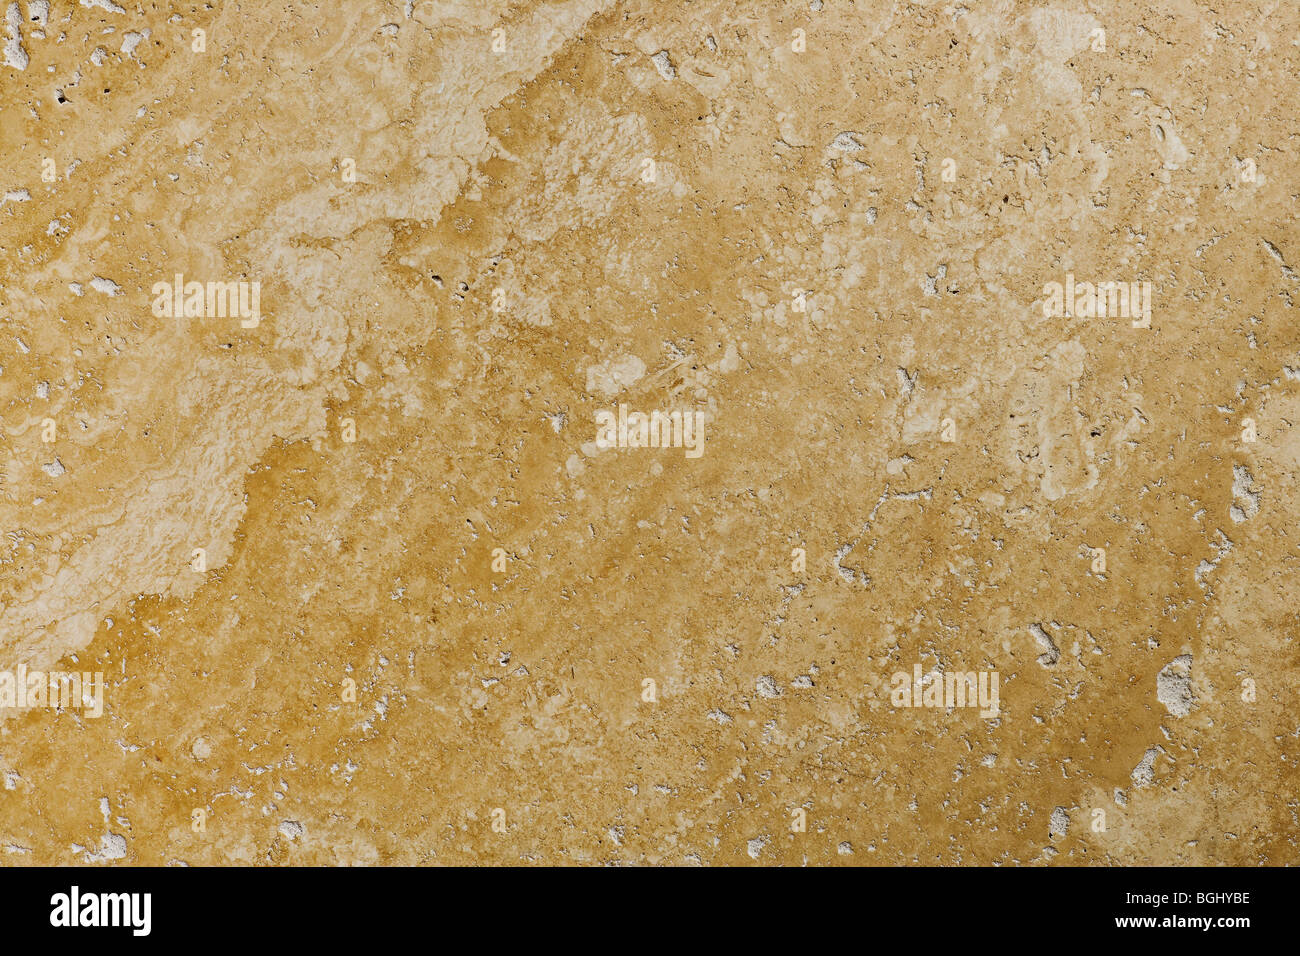 Travertine stone floor tile abstract background closeup stock travertine stone floor tile abstract background closeup dailygadgetfo Images